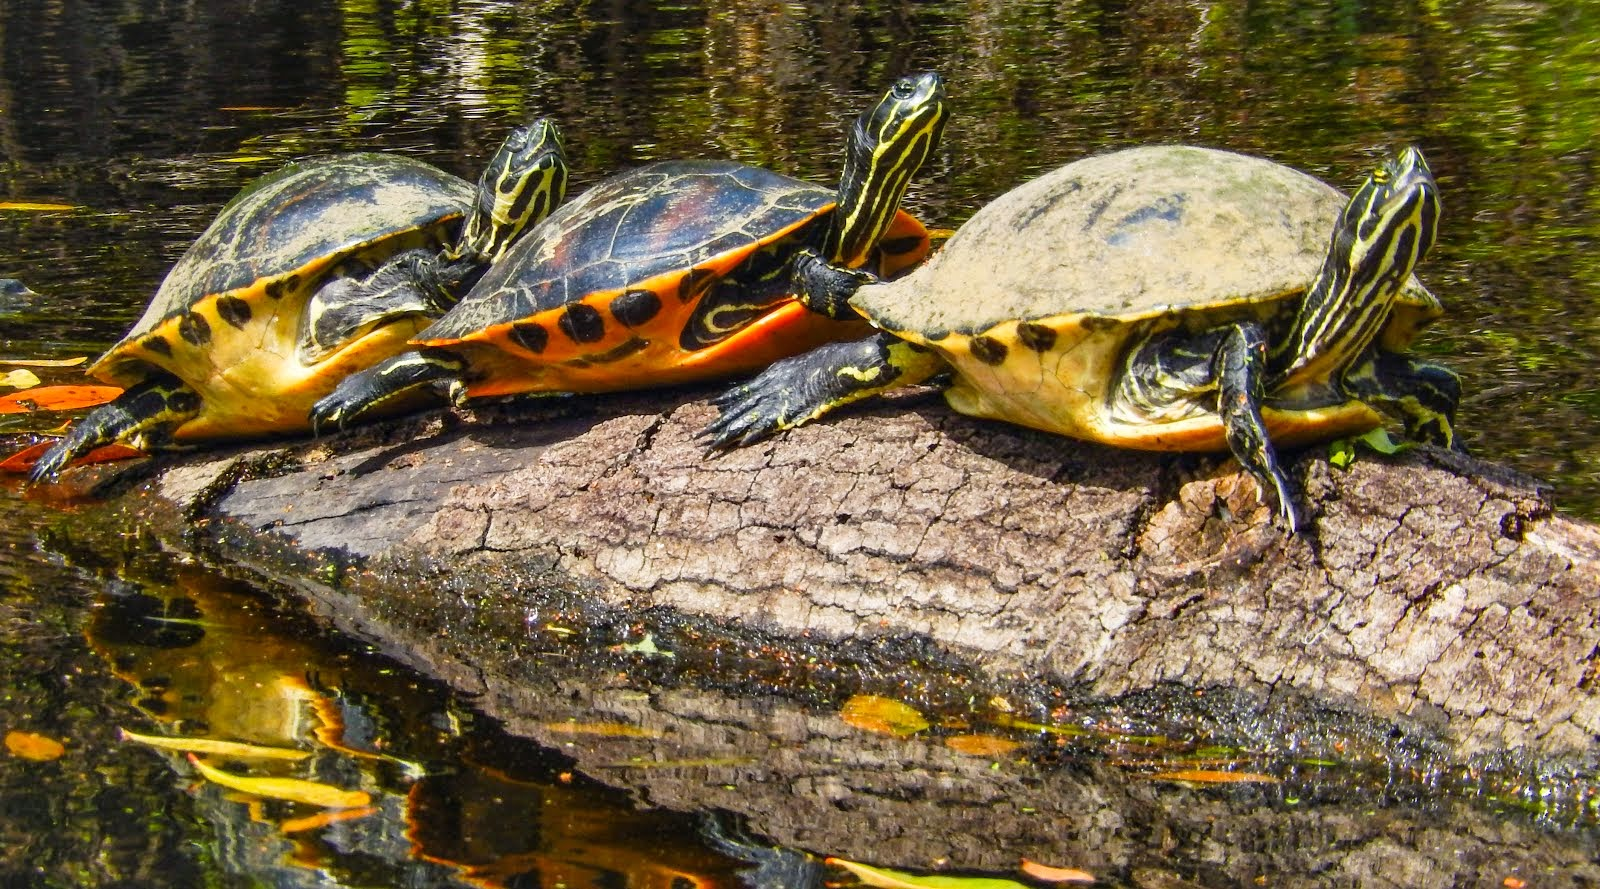 Florida's Beautiful River Cooter Turtles